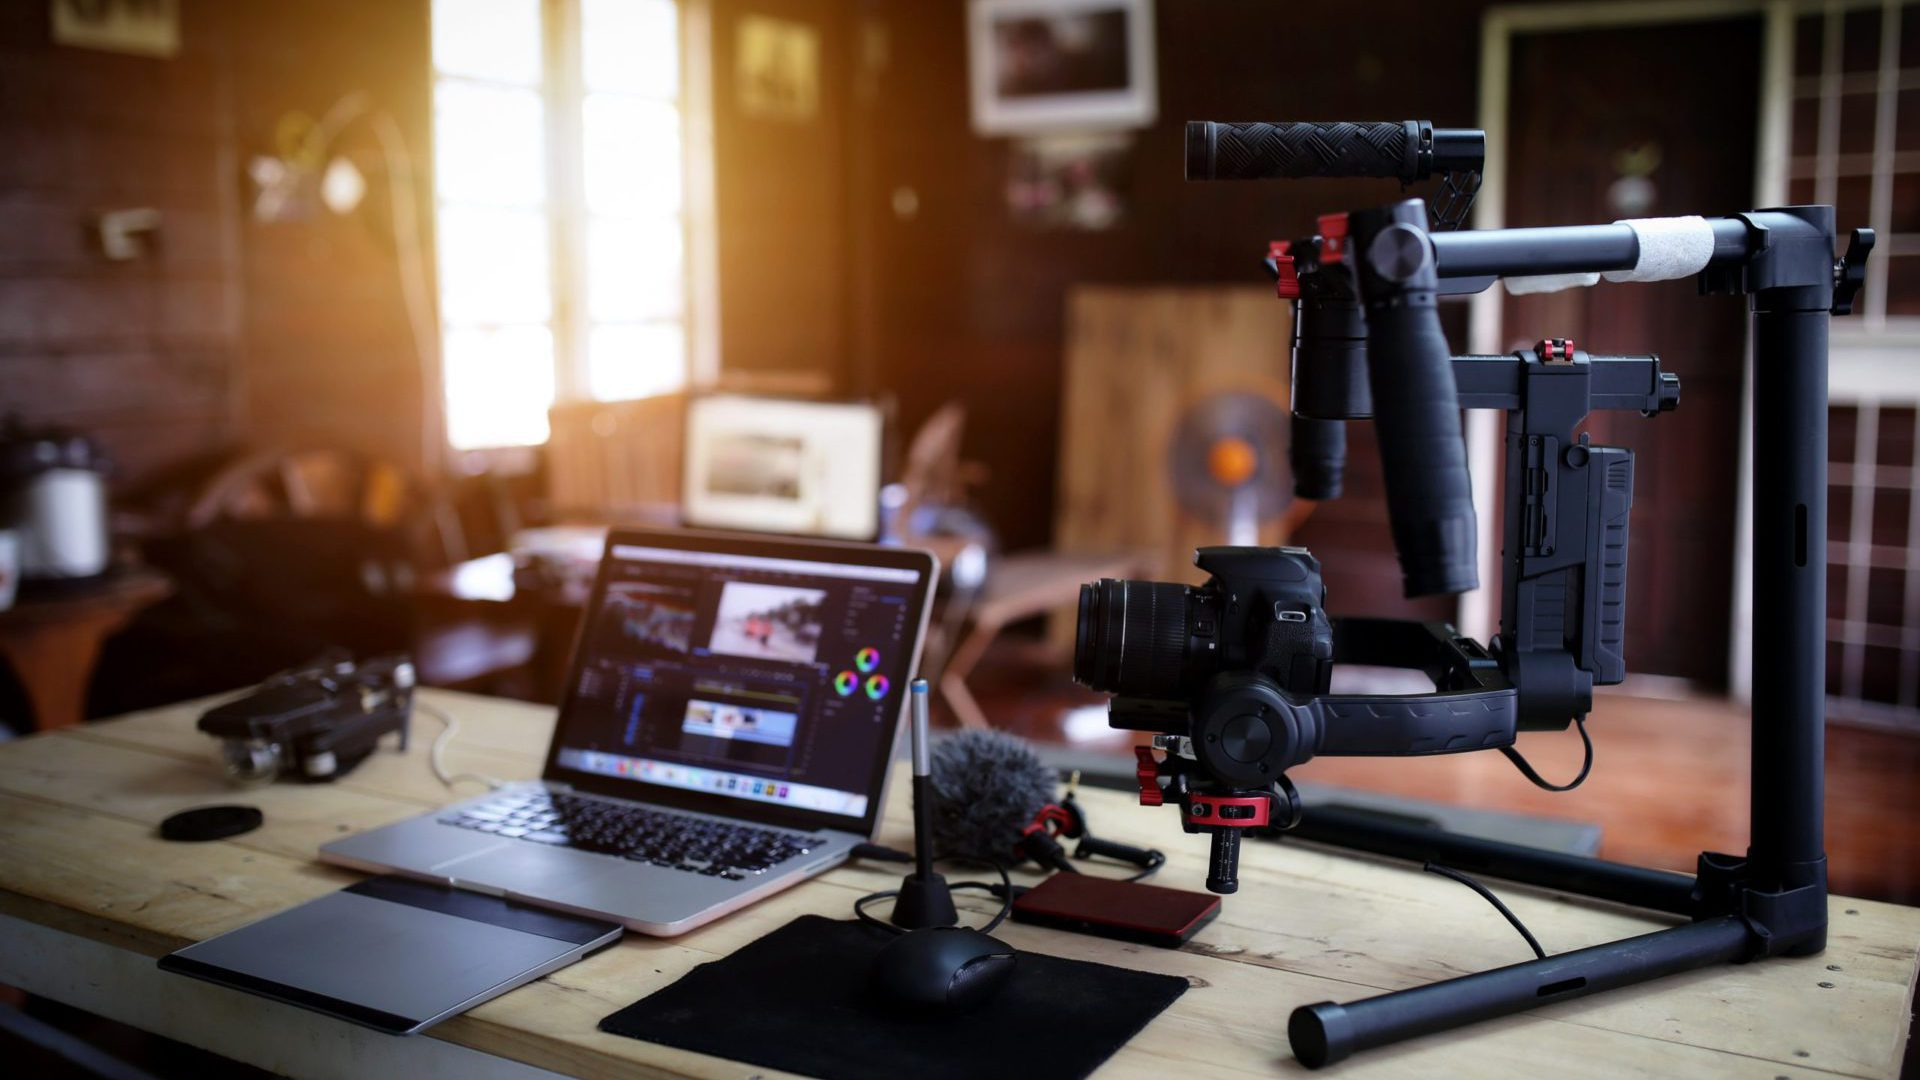 Gaming channel YouTuber equipment laid out on desk including camera, macbook, microphone, and drawing tablet